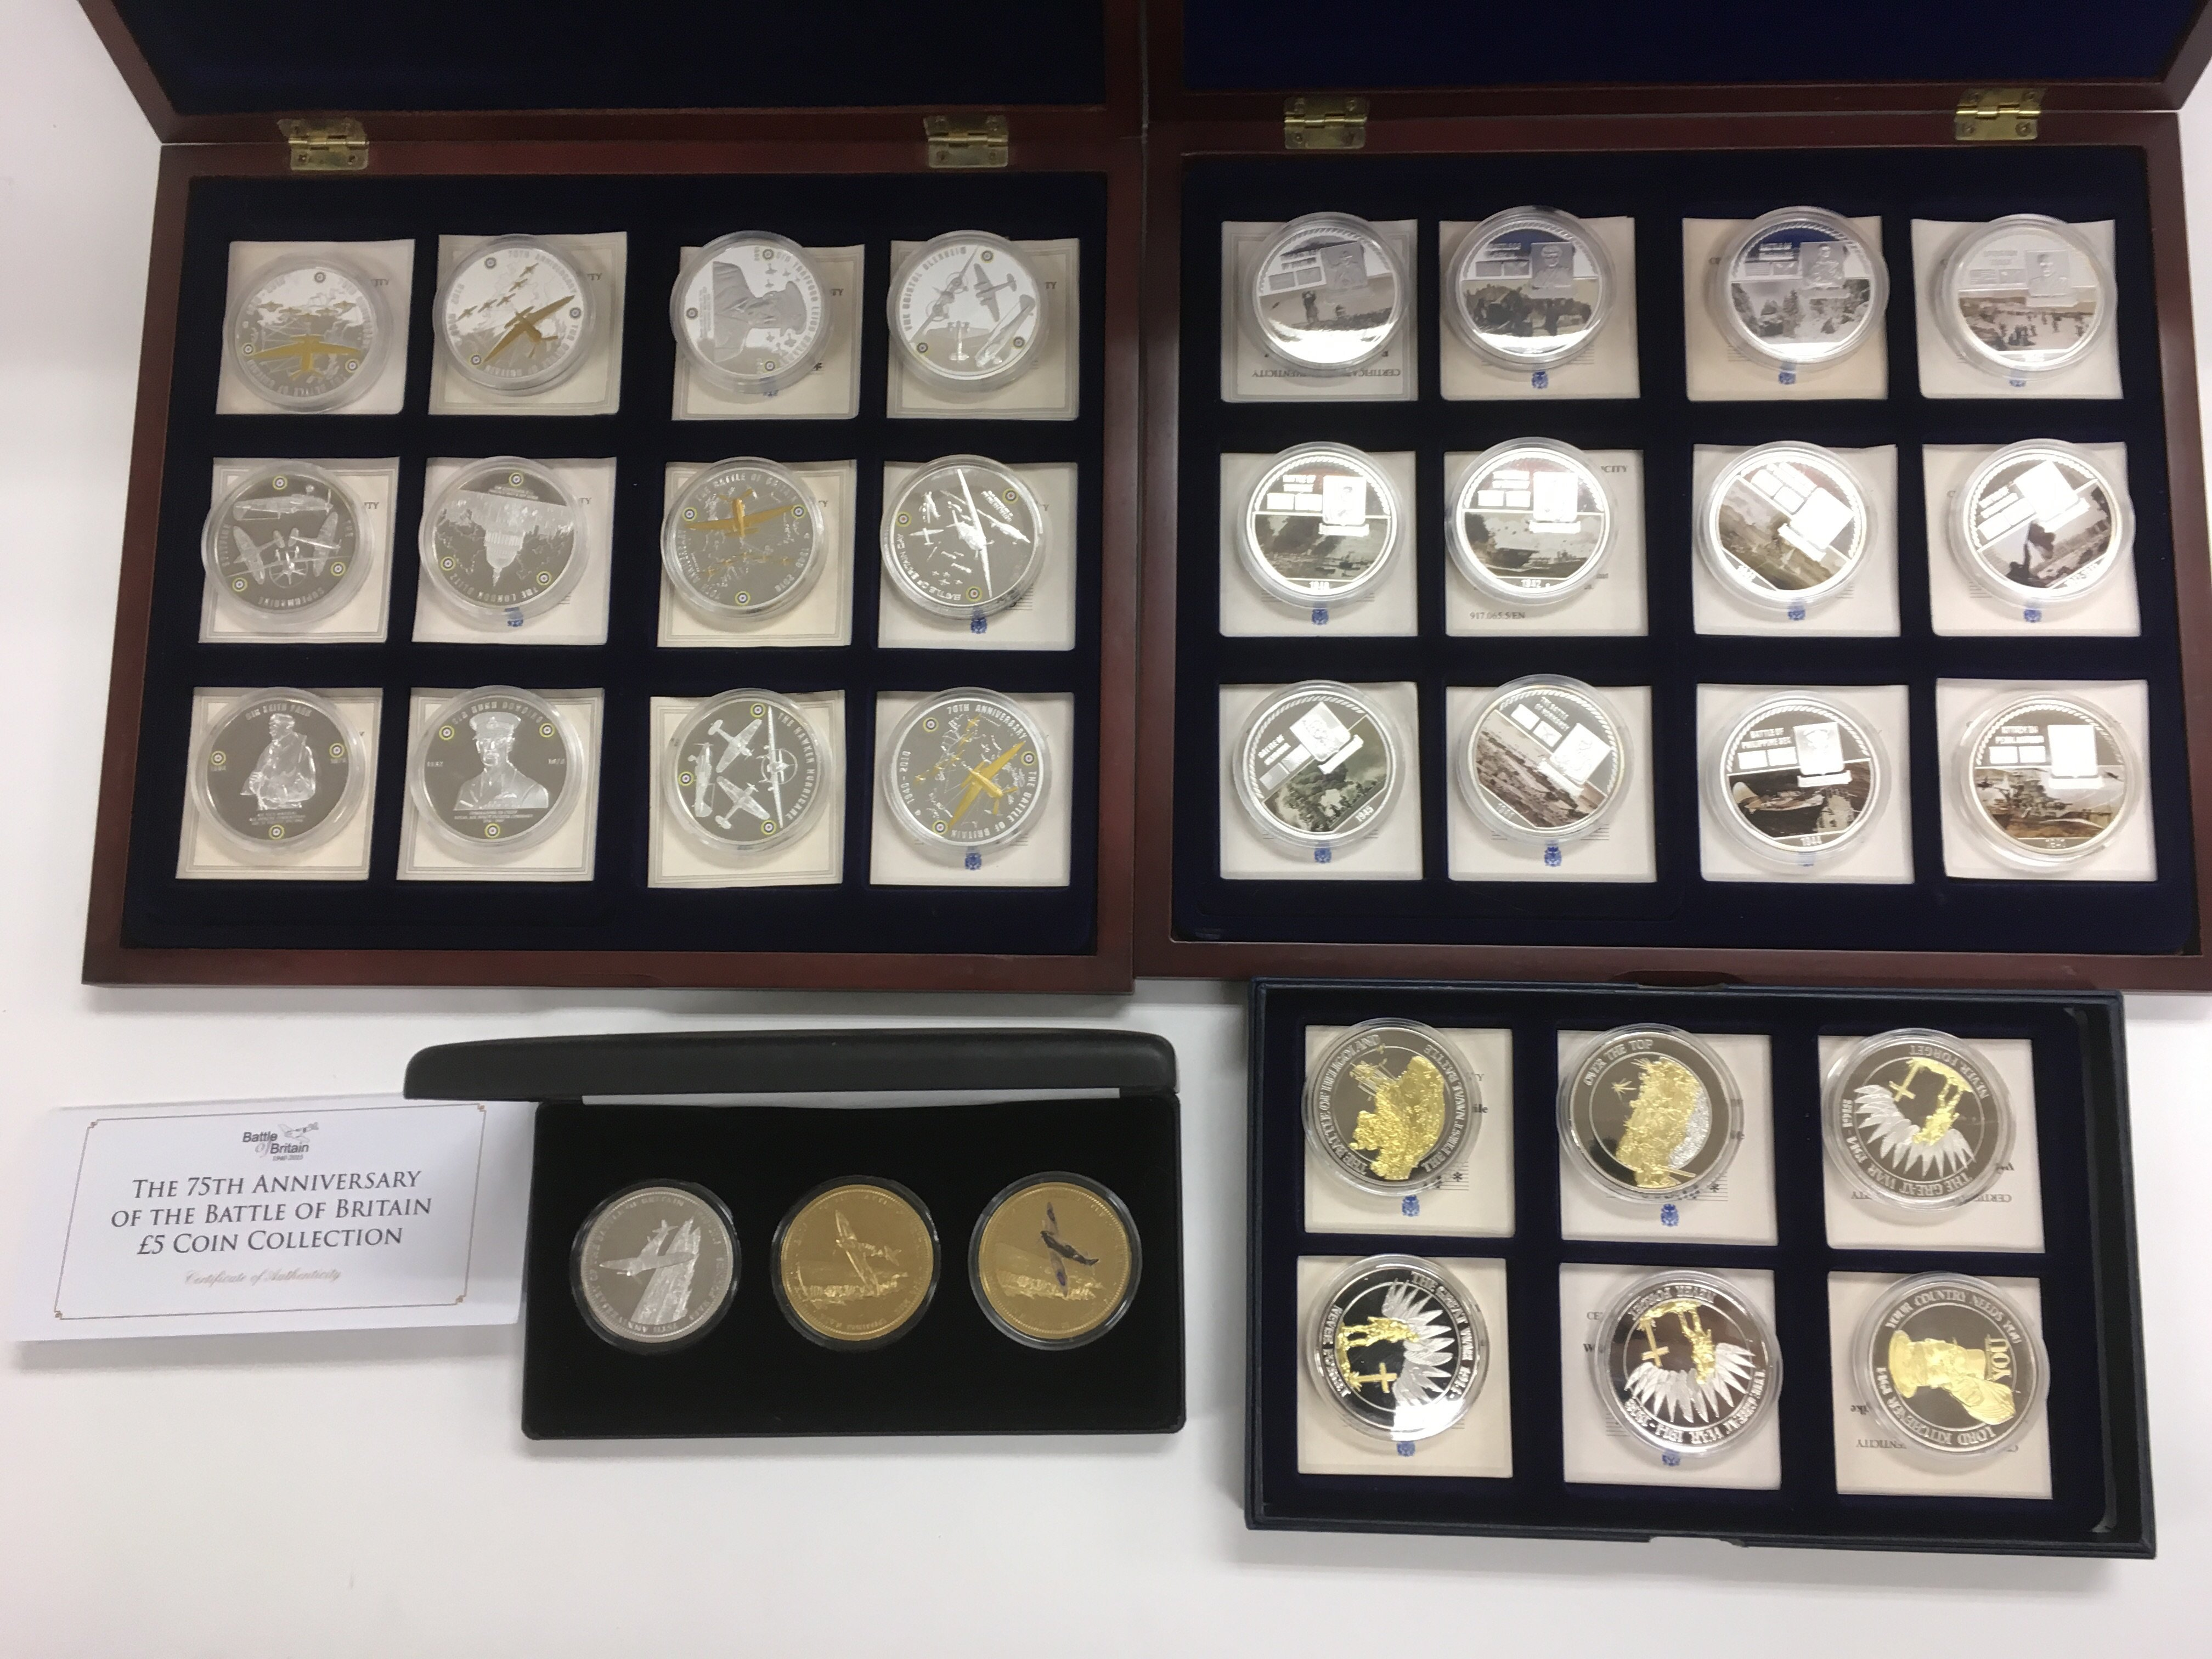 Lot 90 - A collection of Commemorative proof coins of milit